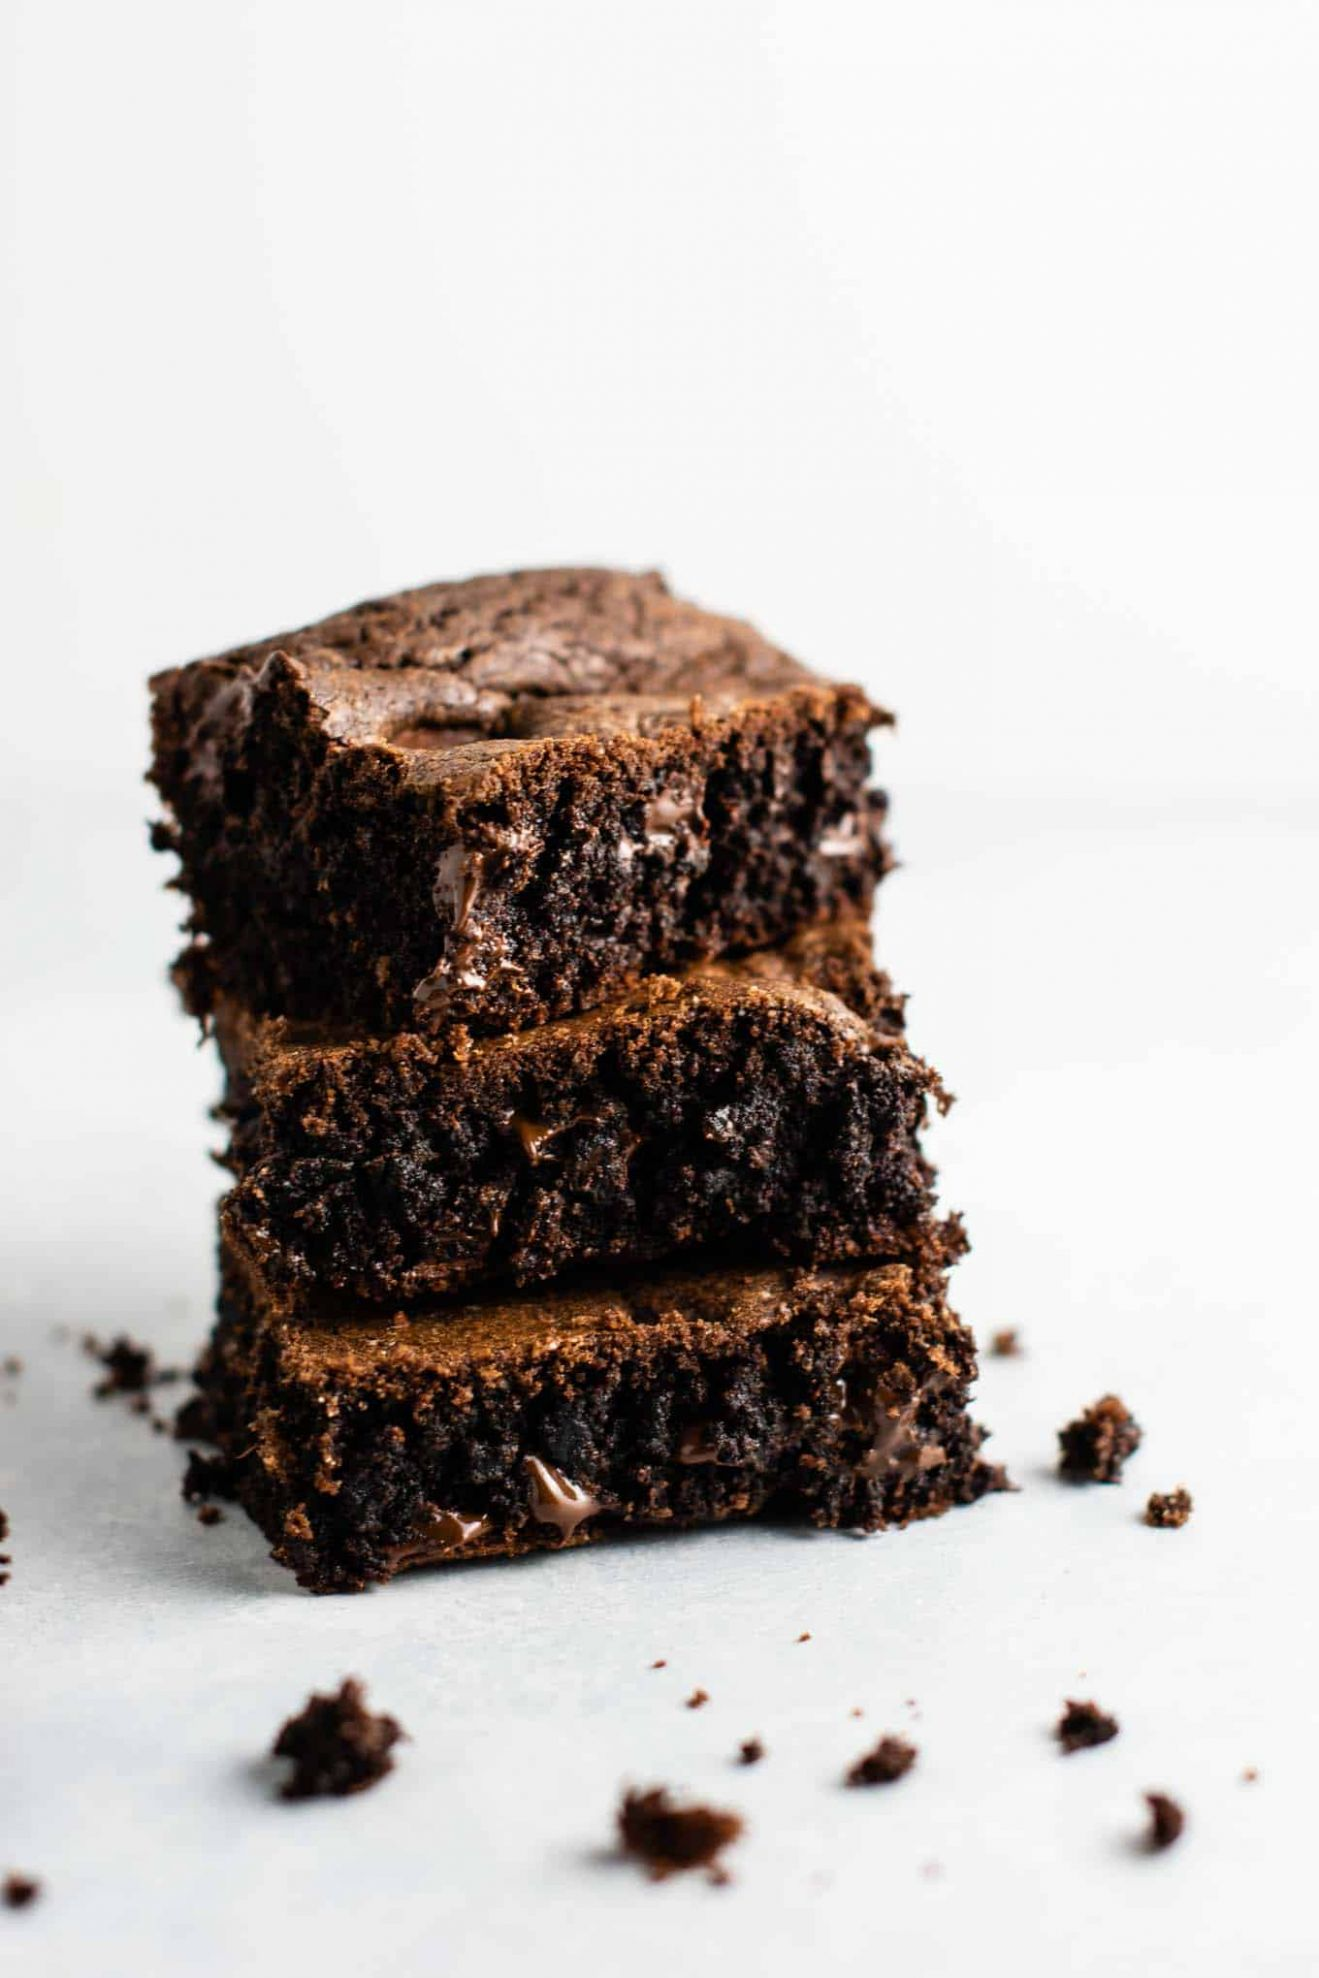 Cake Mix Brownies - Recipes Chocolate Cake Mix